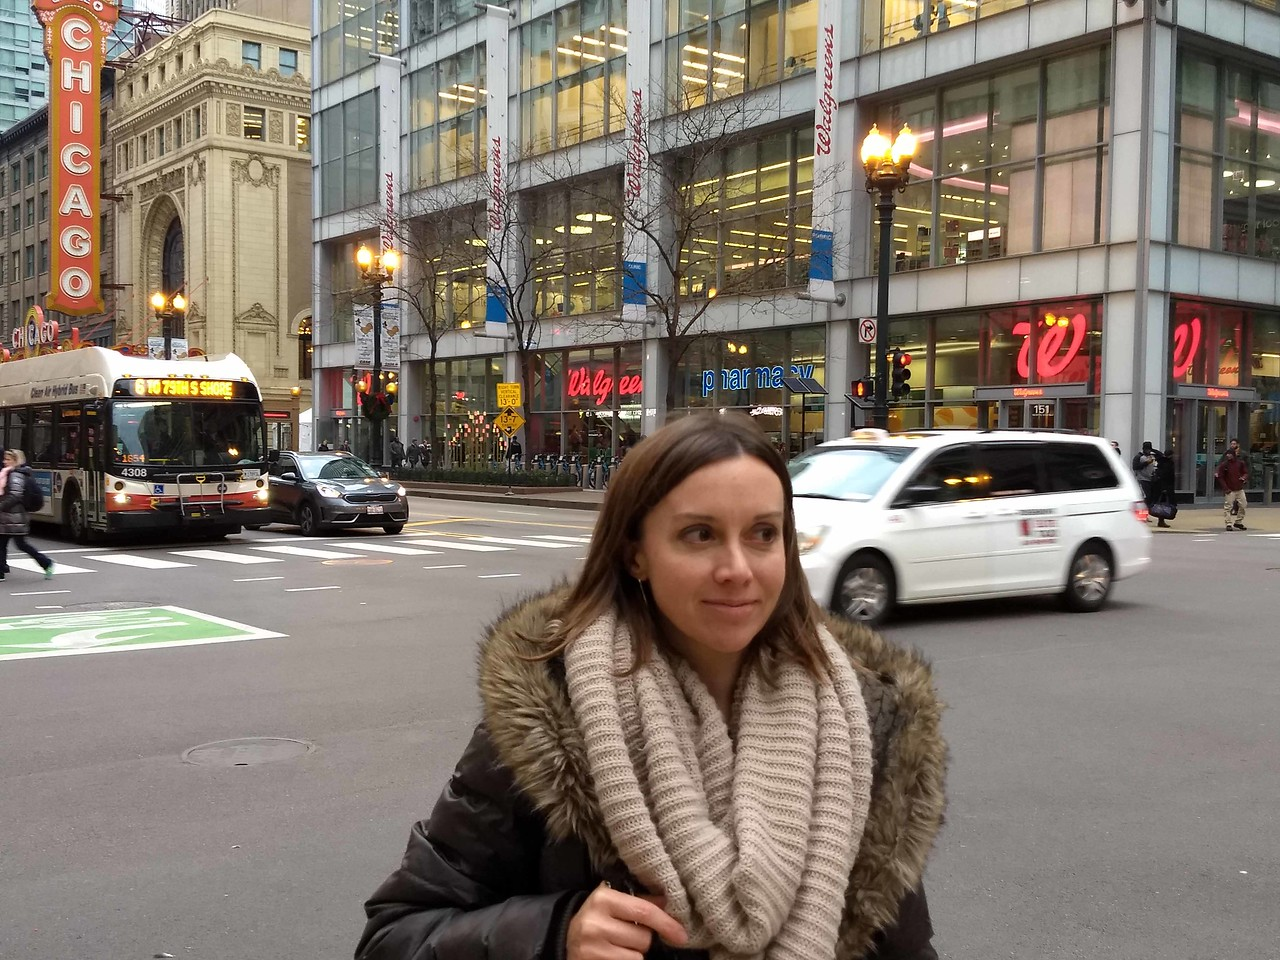 04 Carrie near the Chicago Theater